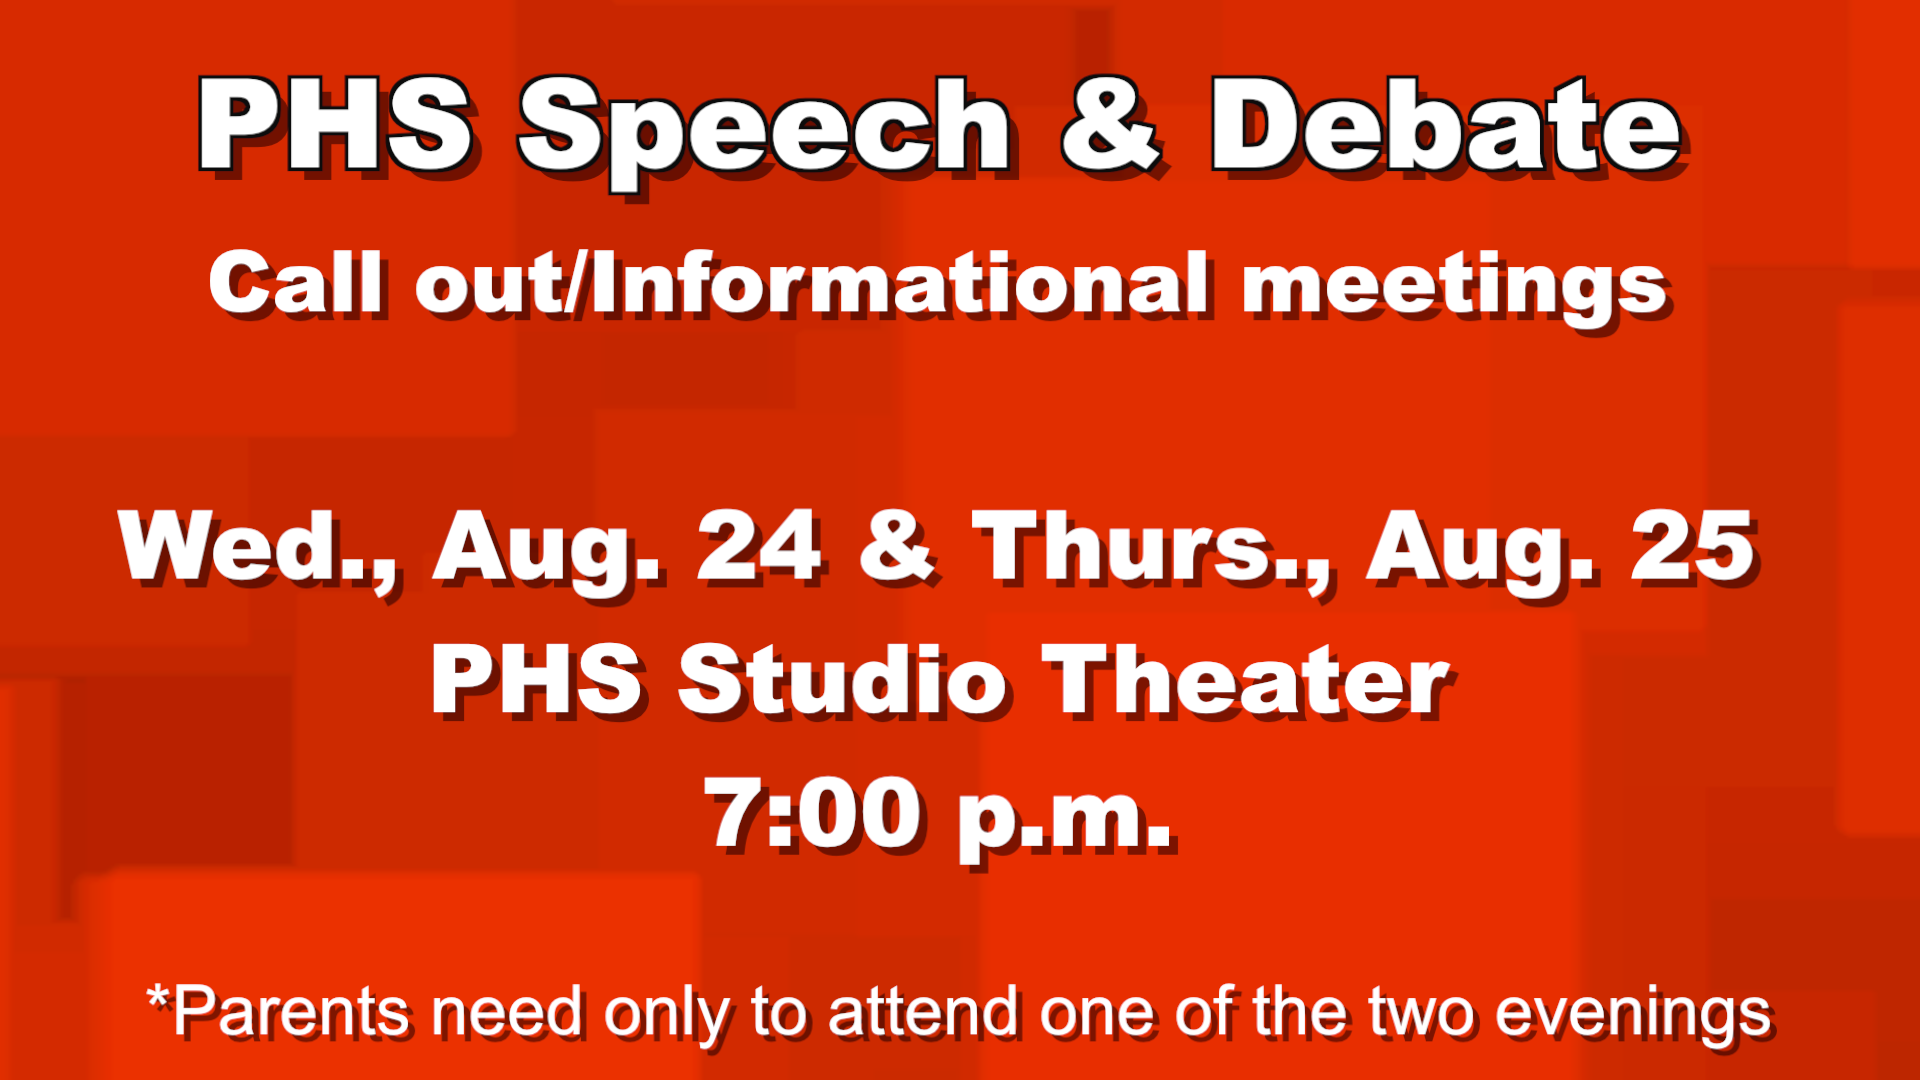 Speech & Debate Hosts Upcoming Parent Meeting  Attention parents of Speech and Debate Team members, PHS will be holding two call out/informational meetings next week on Wednesday, August 24th or Thursday, August 25th at 7:00 p.m. both in the Plymouth High School Studio Theater.  Parents need only attend one of the two evenings. The meetings are for information about the 2016-2017 PHS Speech and Debate Team, season, events, fundraisers, judging, hosting tournaments, and more!